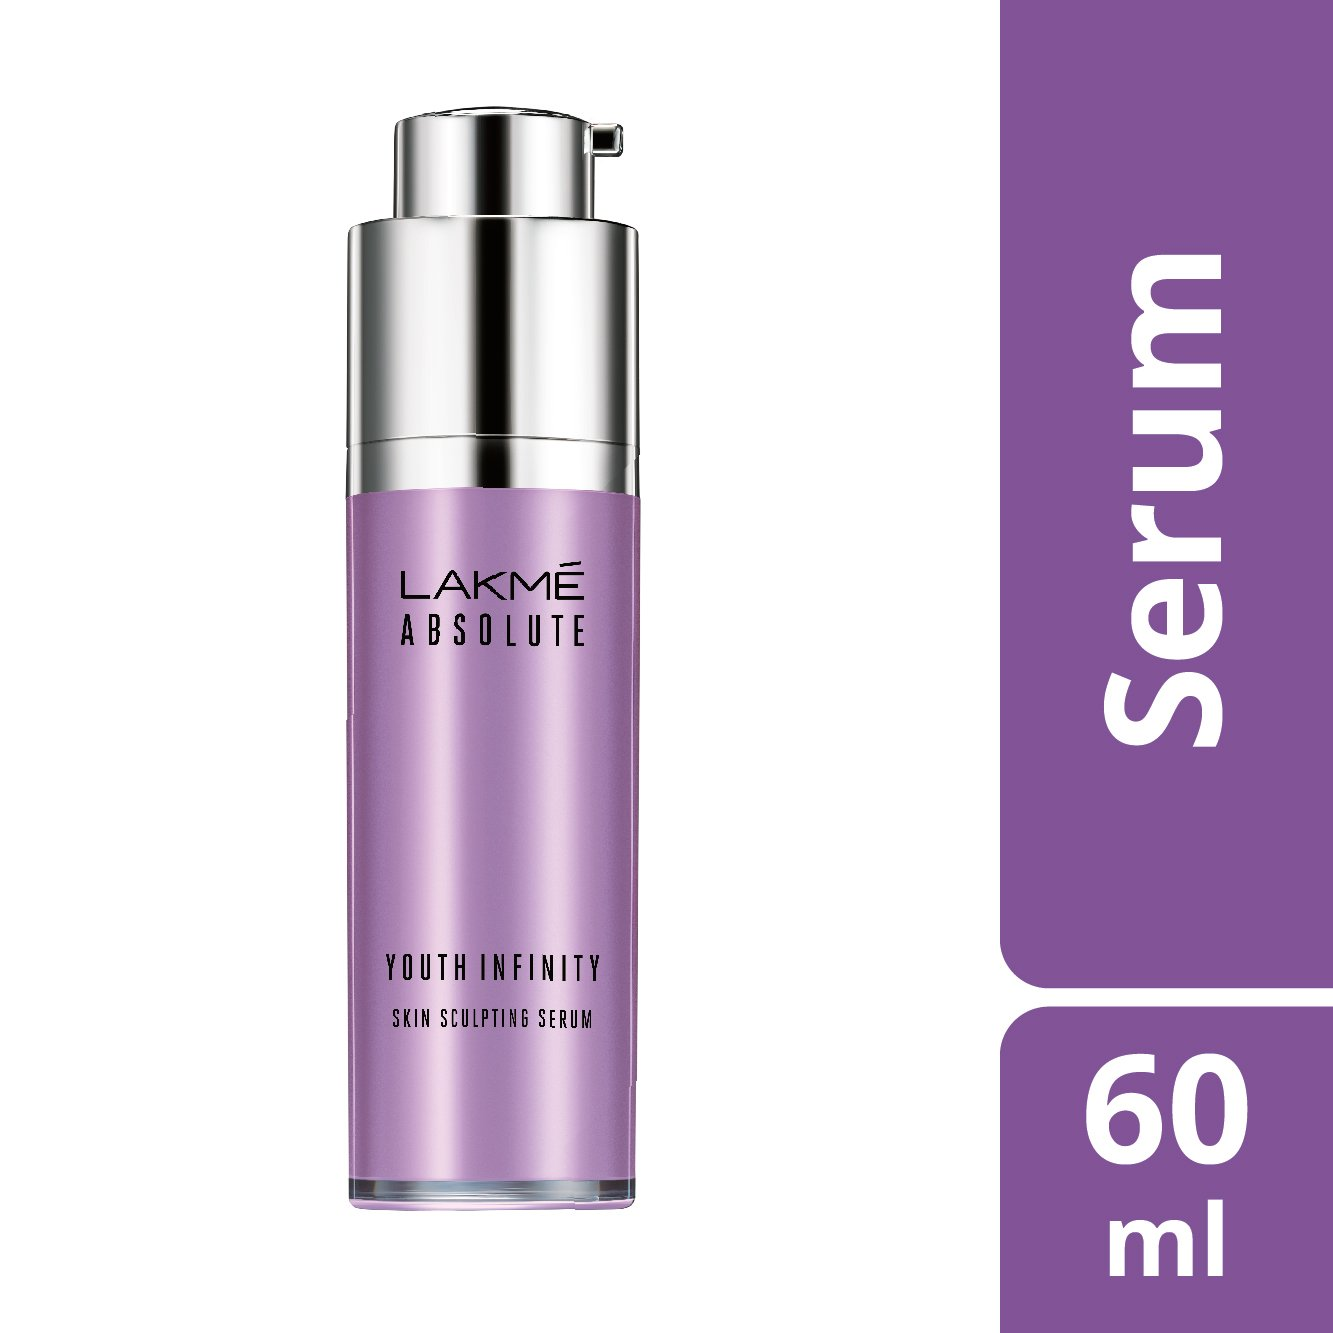 Lakme Youth Infinity Skin Firming Serum 30 ml product image